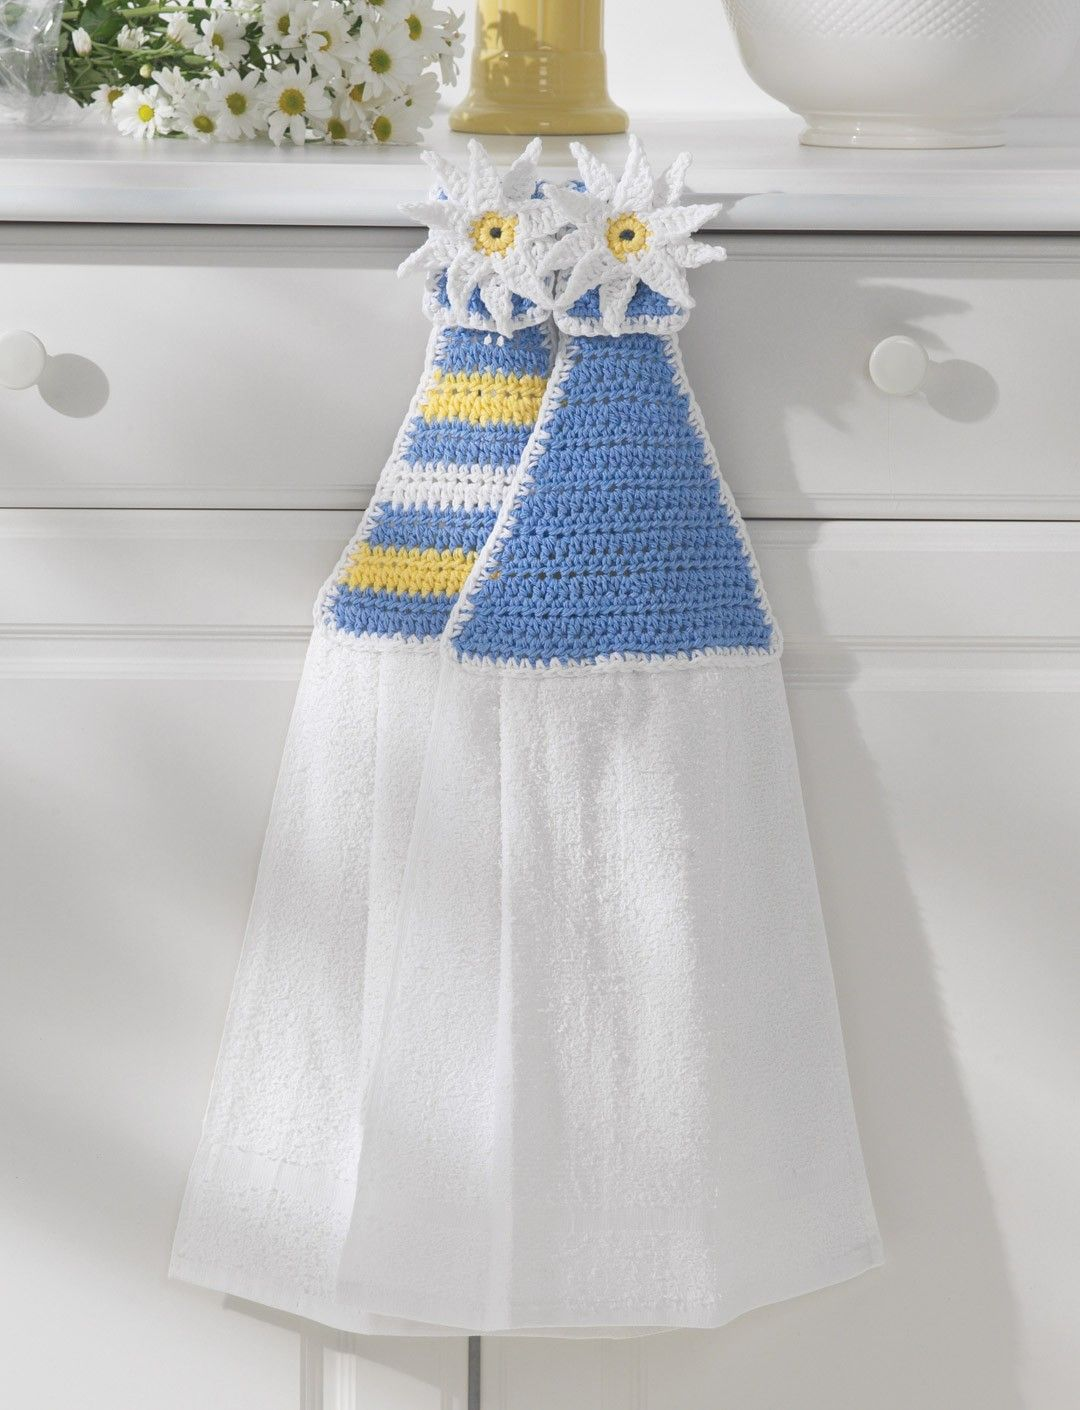 Yarnspirations.com - Lily Towel Toppers - Patterns | Yarnspirations ...